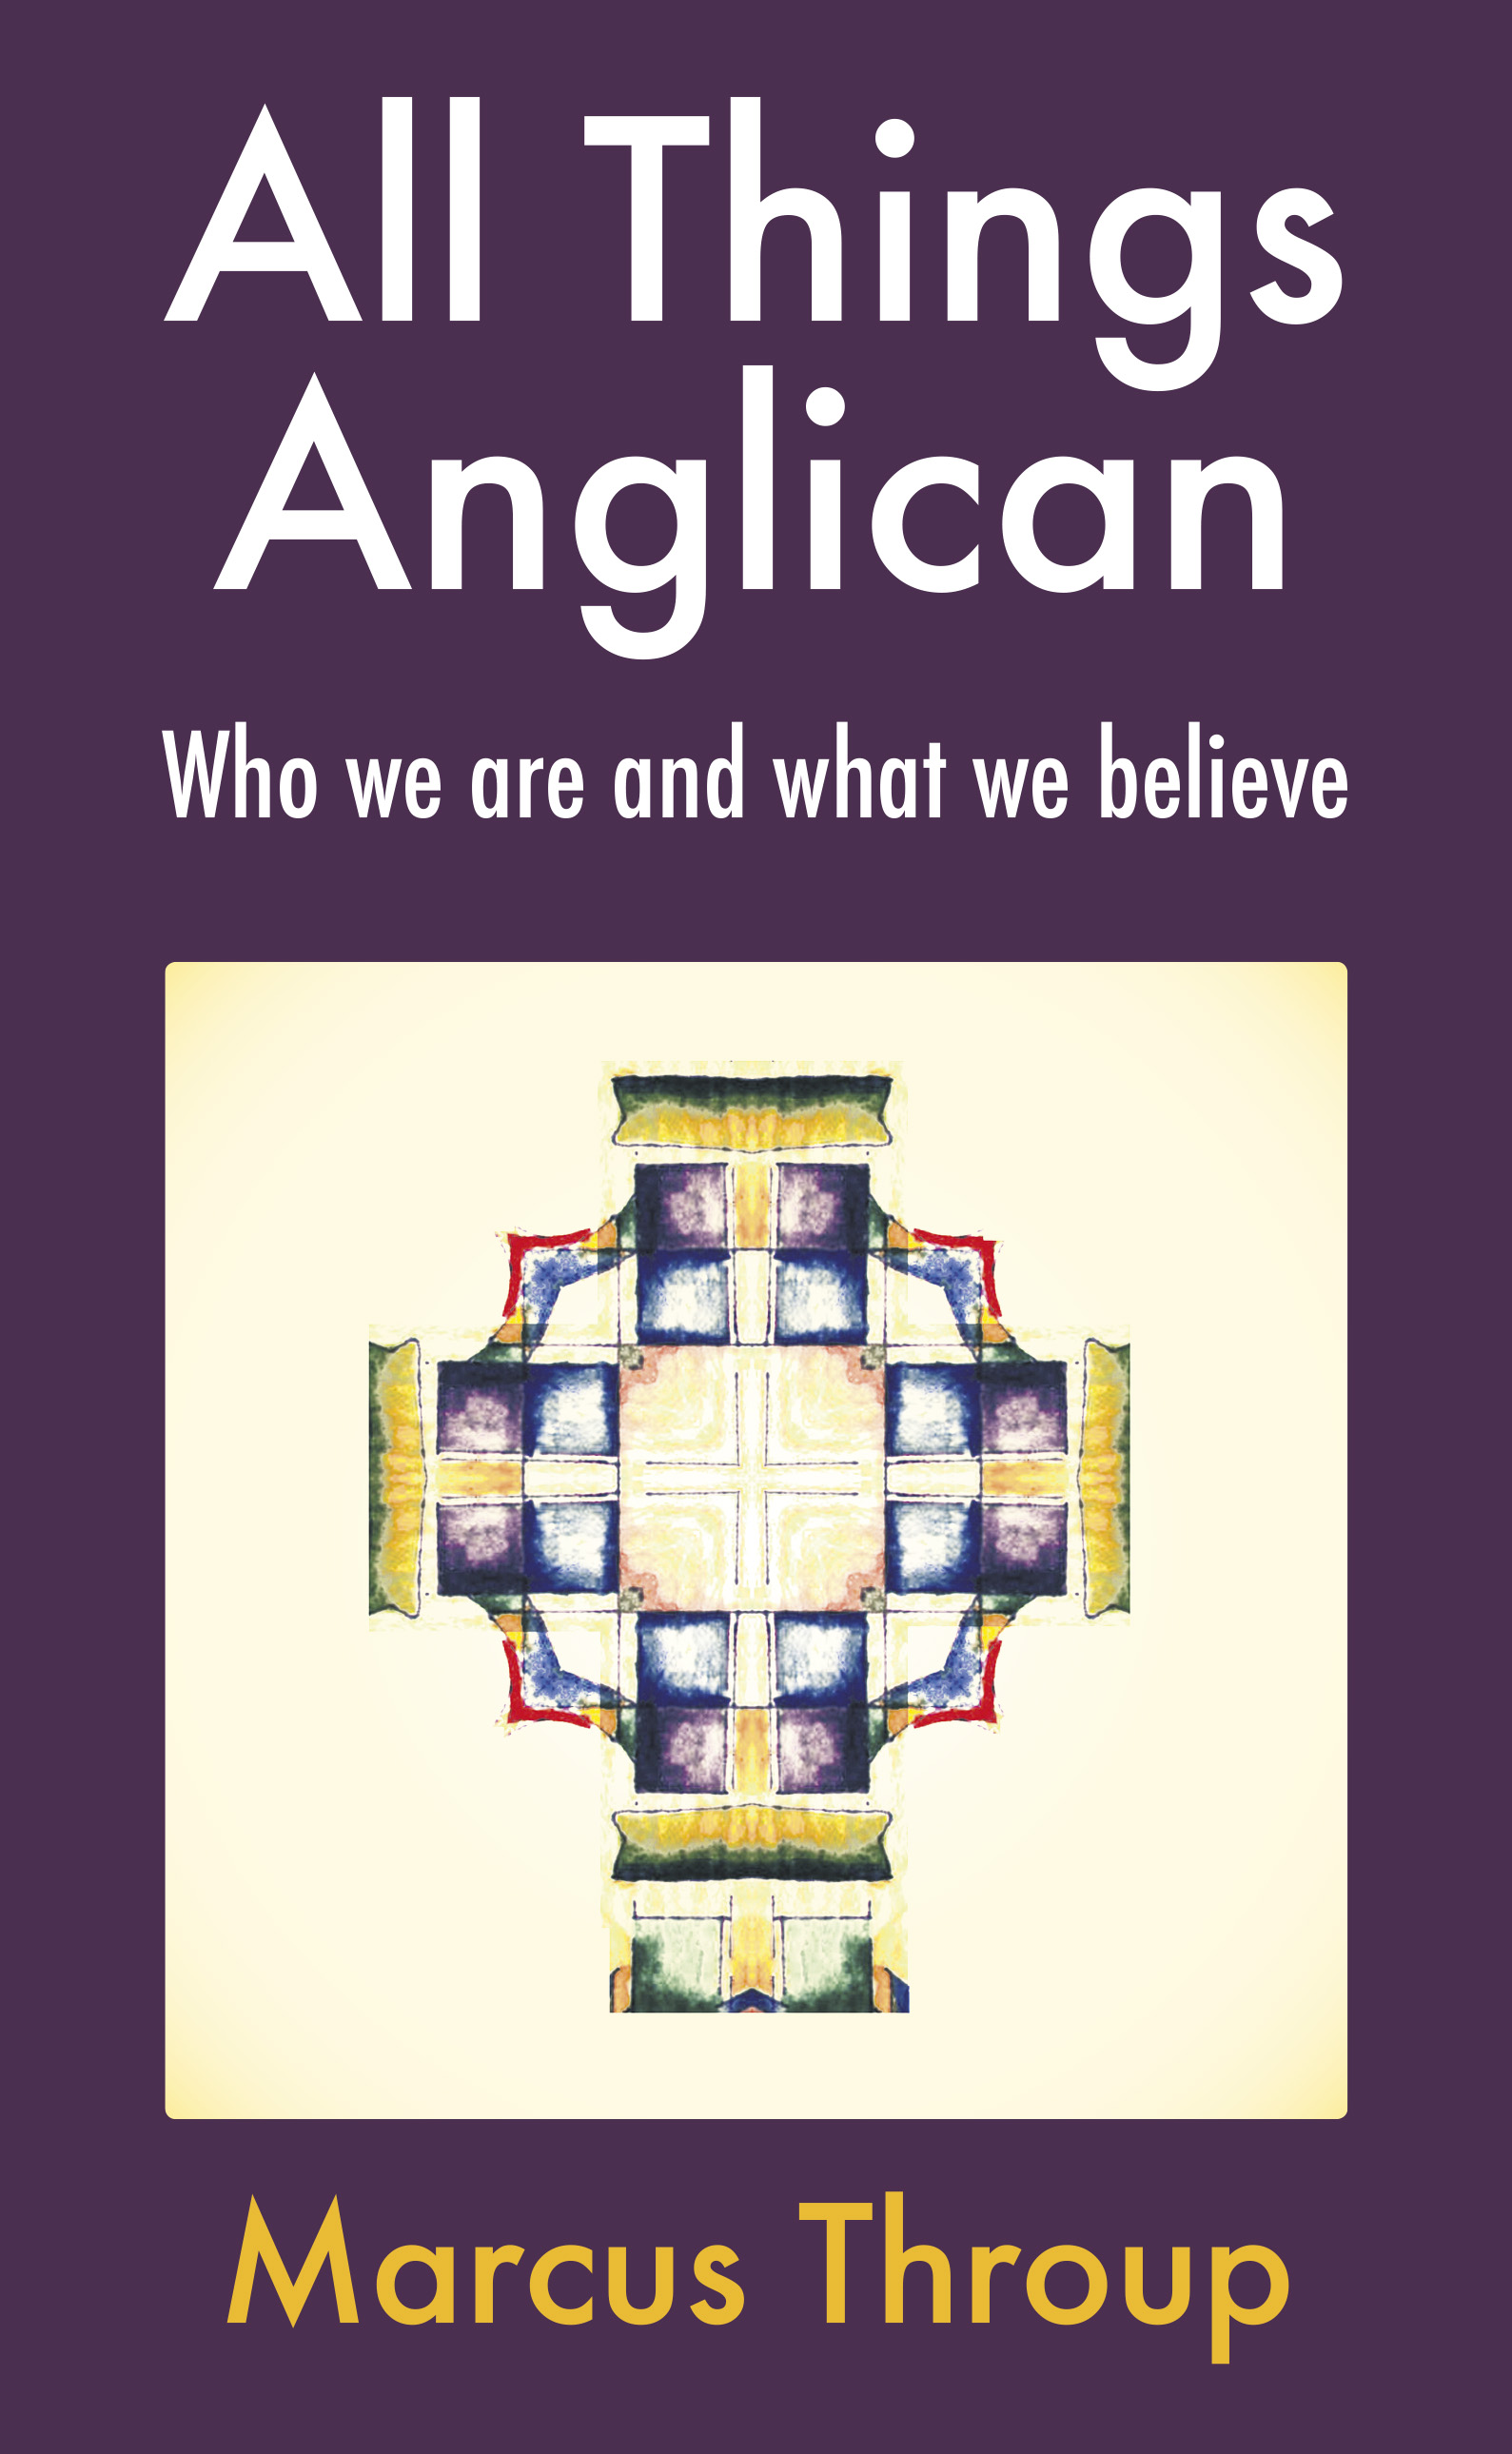 Book cover - All things Anglican